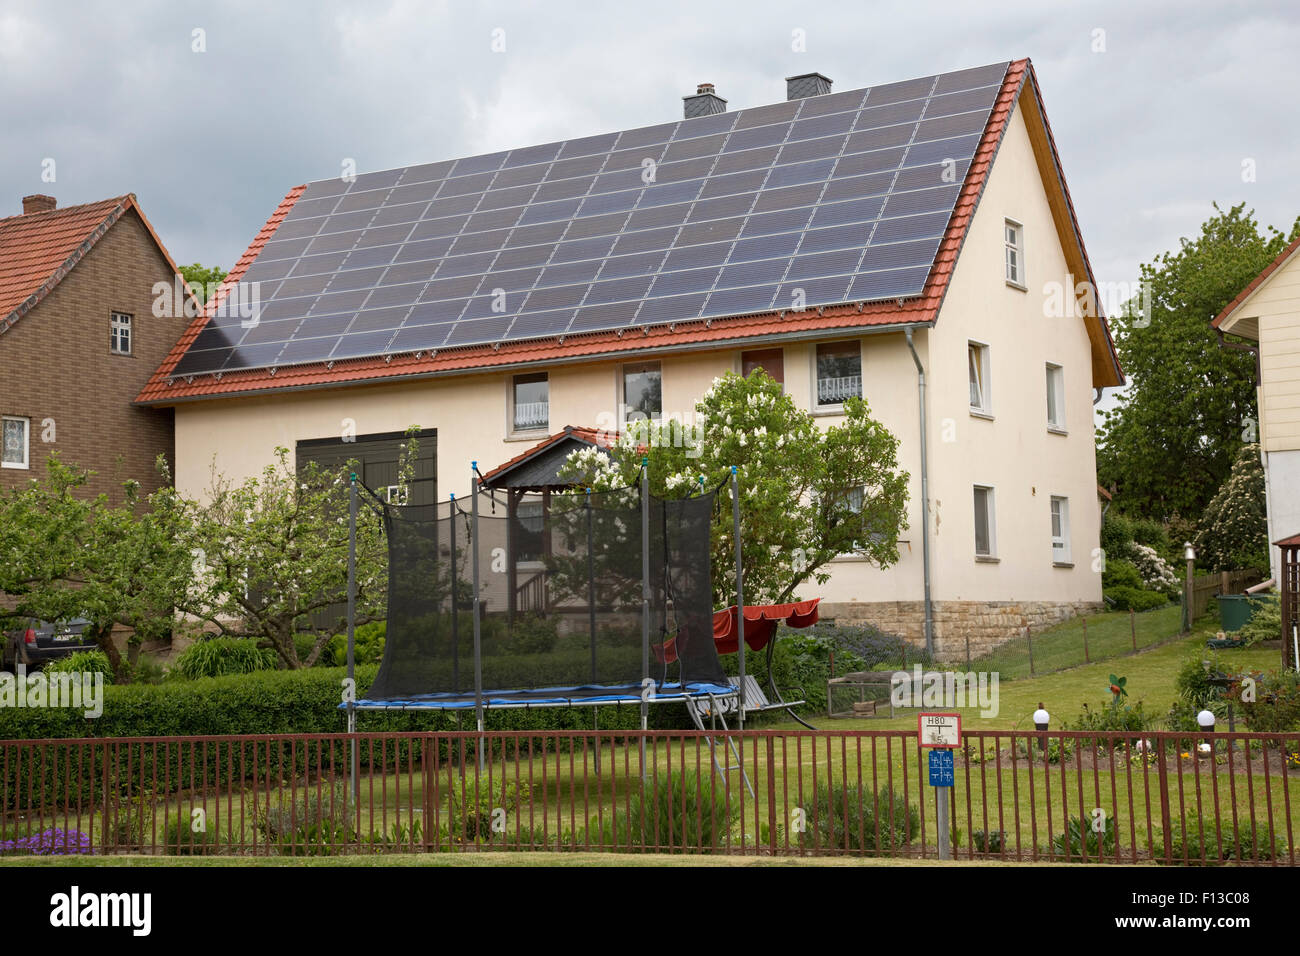 Photovoltaic solar PV panels on roof of private house Germany - Stock Image